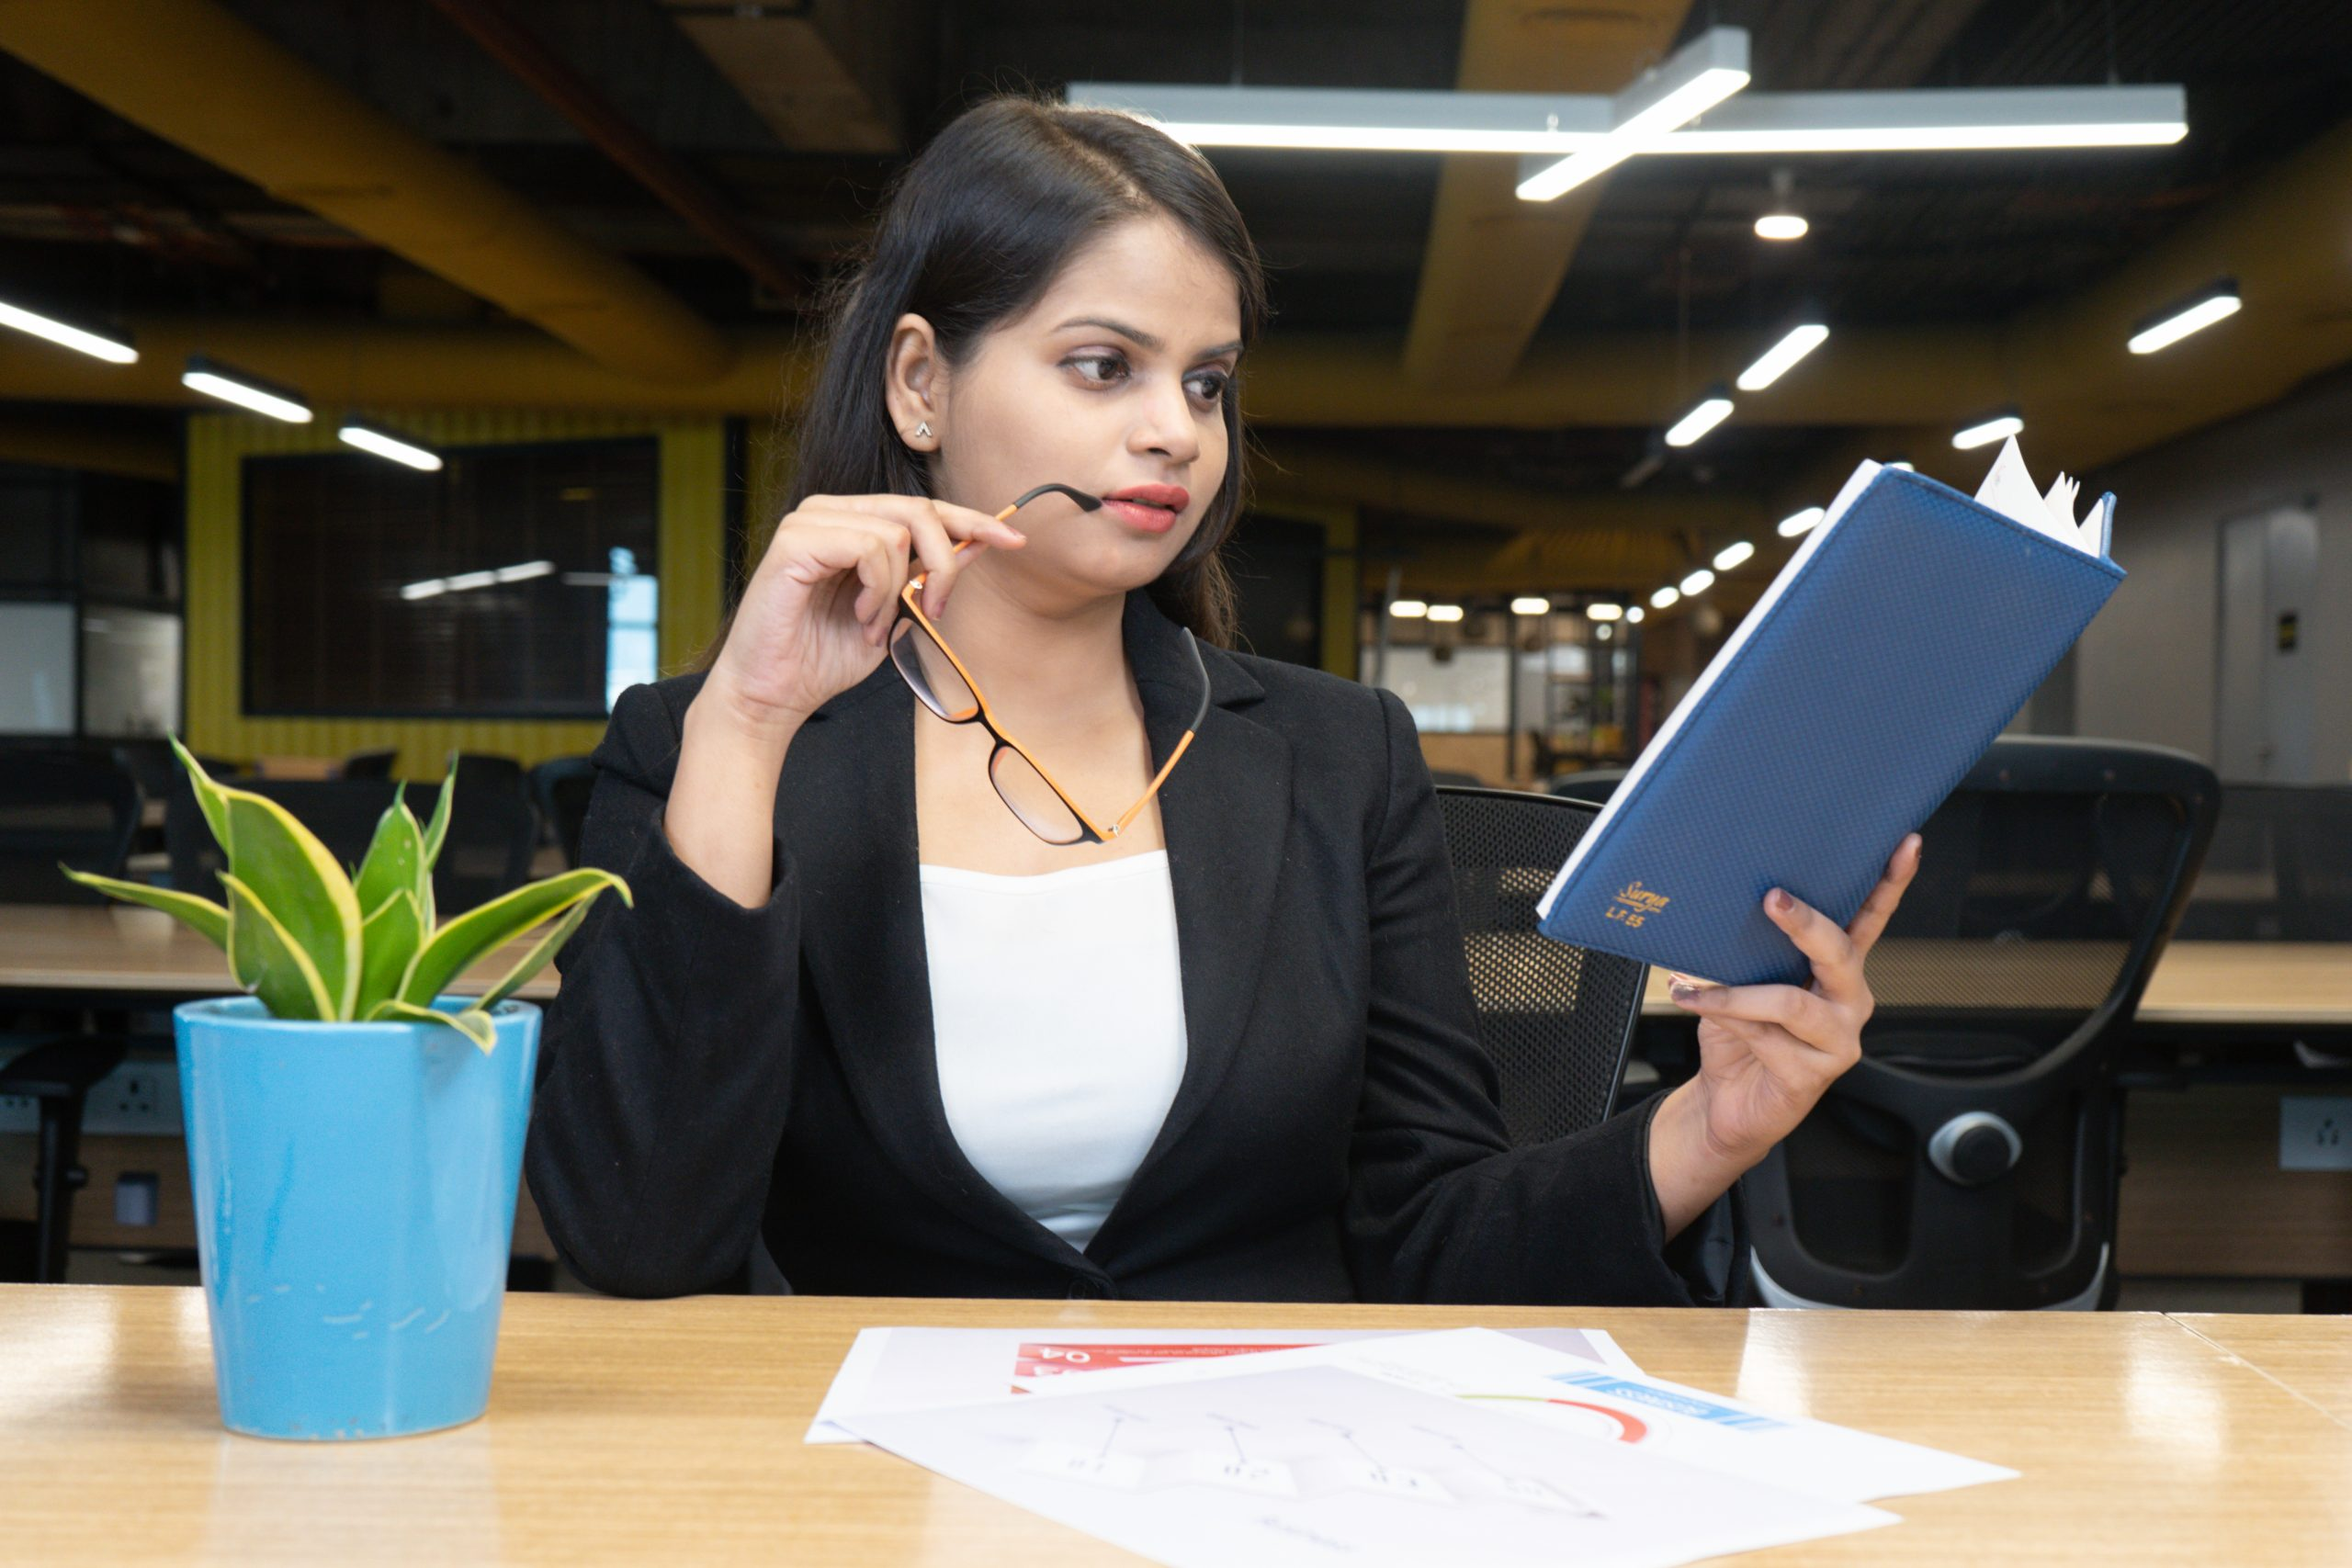 A girl checking her notebook in office